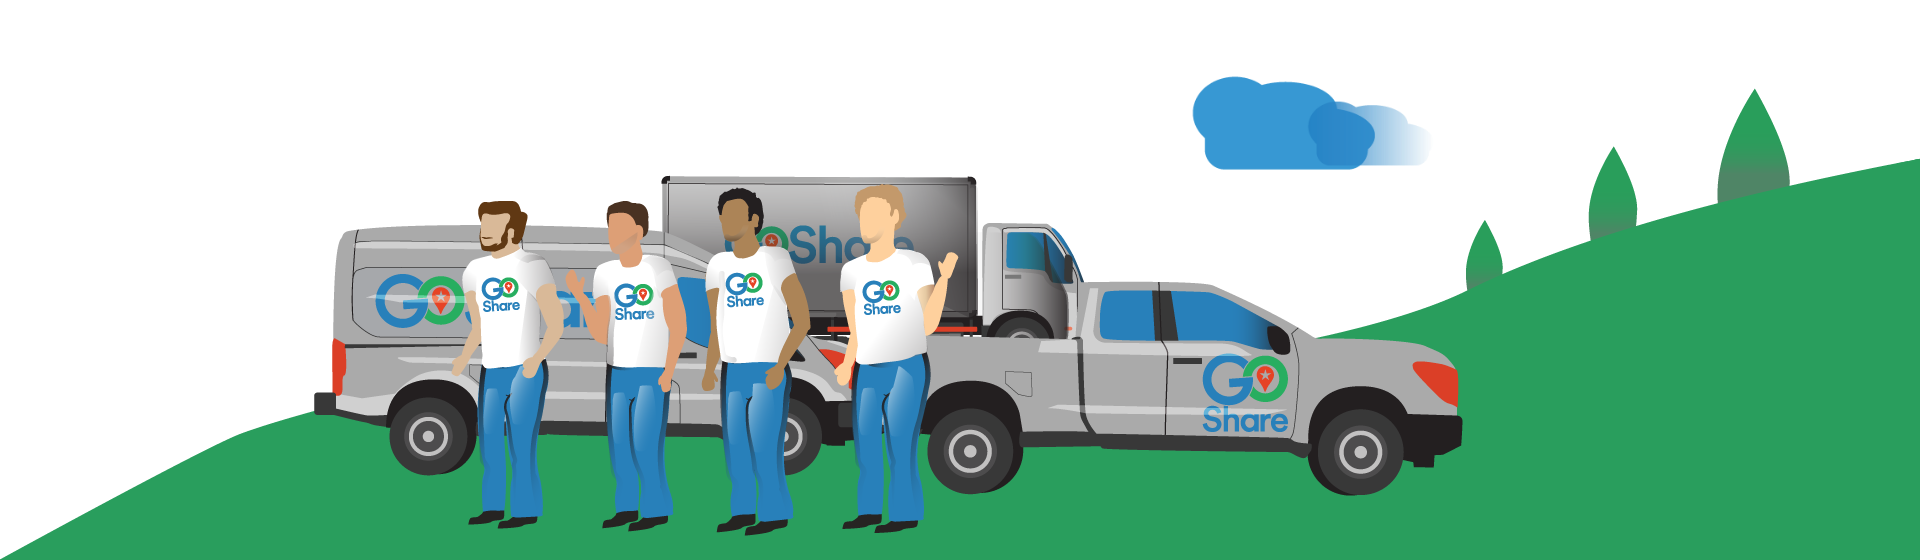 Driving Job, Couriers, Hot Shot Job, Delivery Job - GoShare